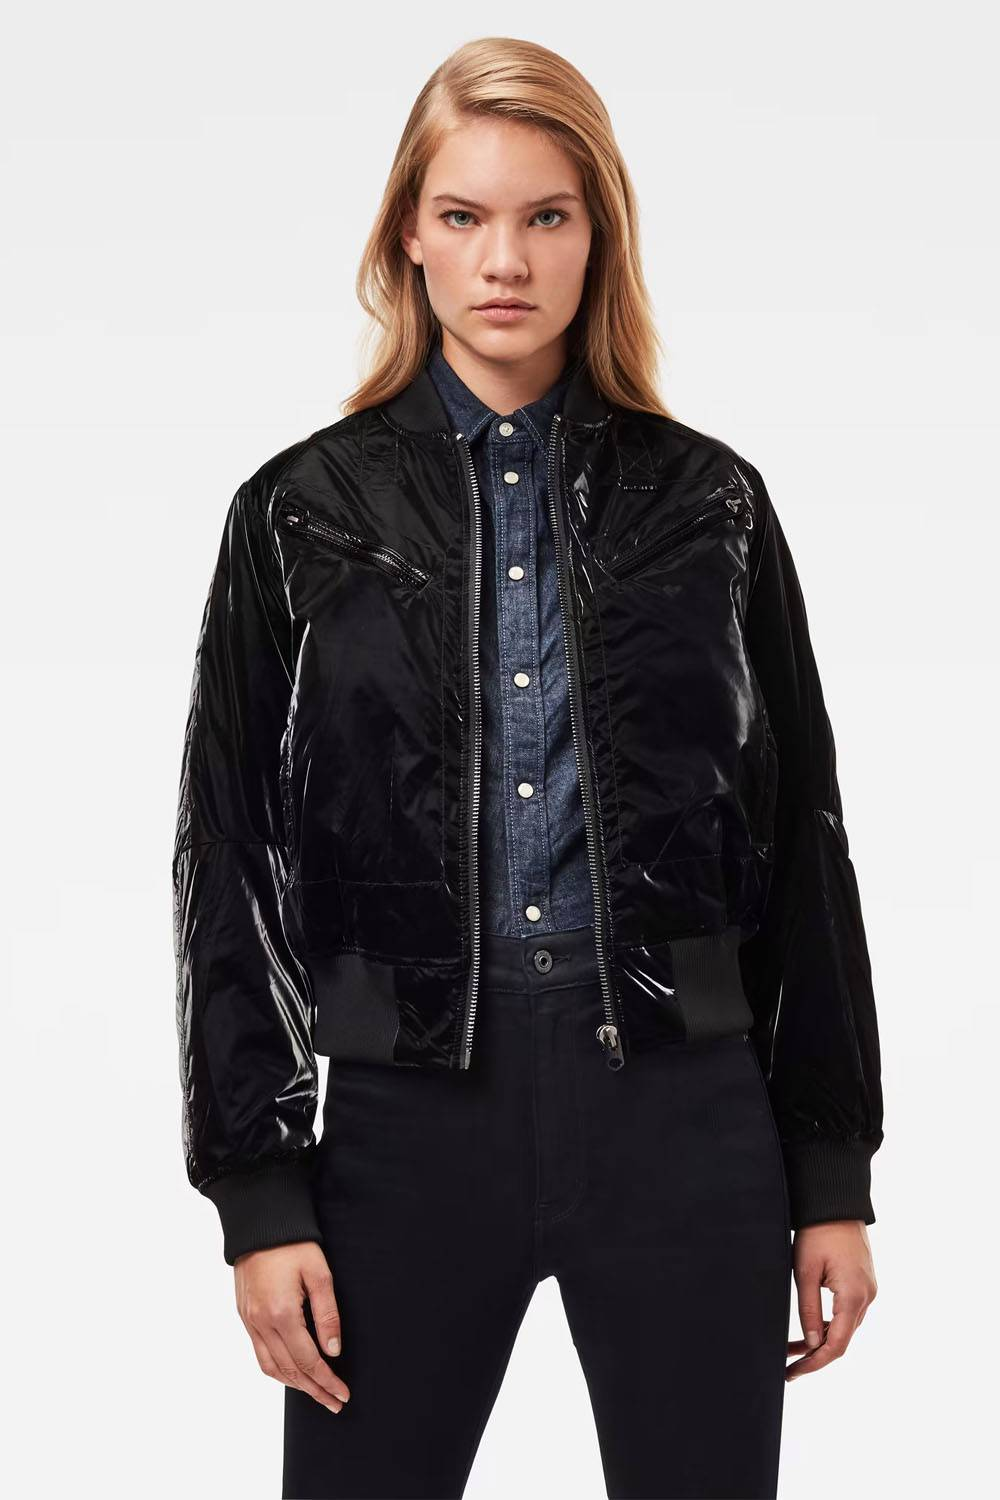 g-star raw faux leather jacket